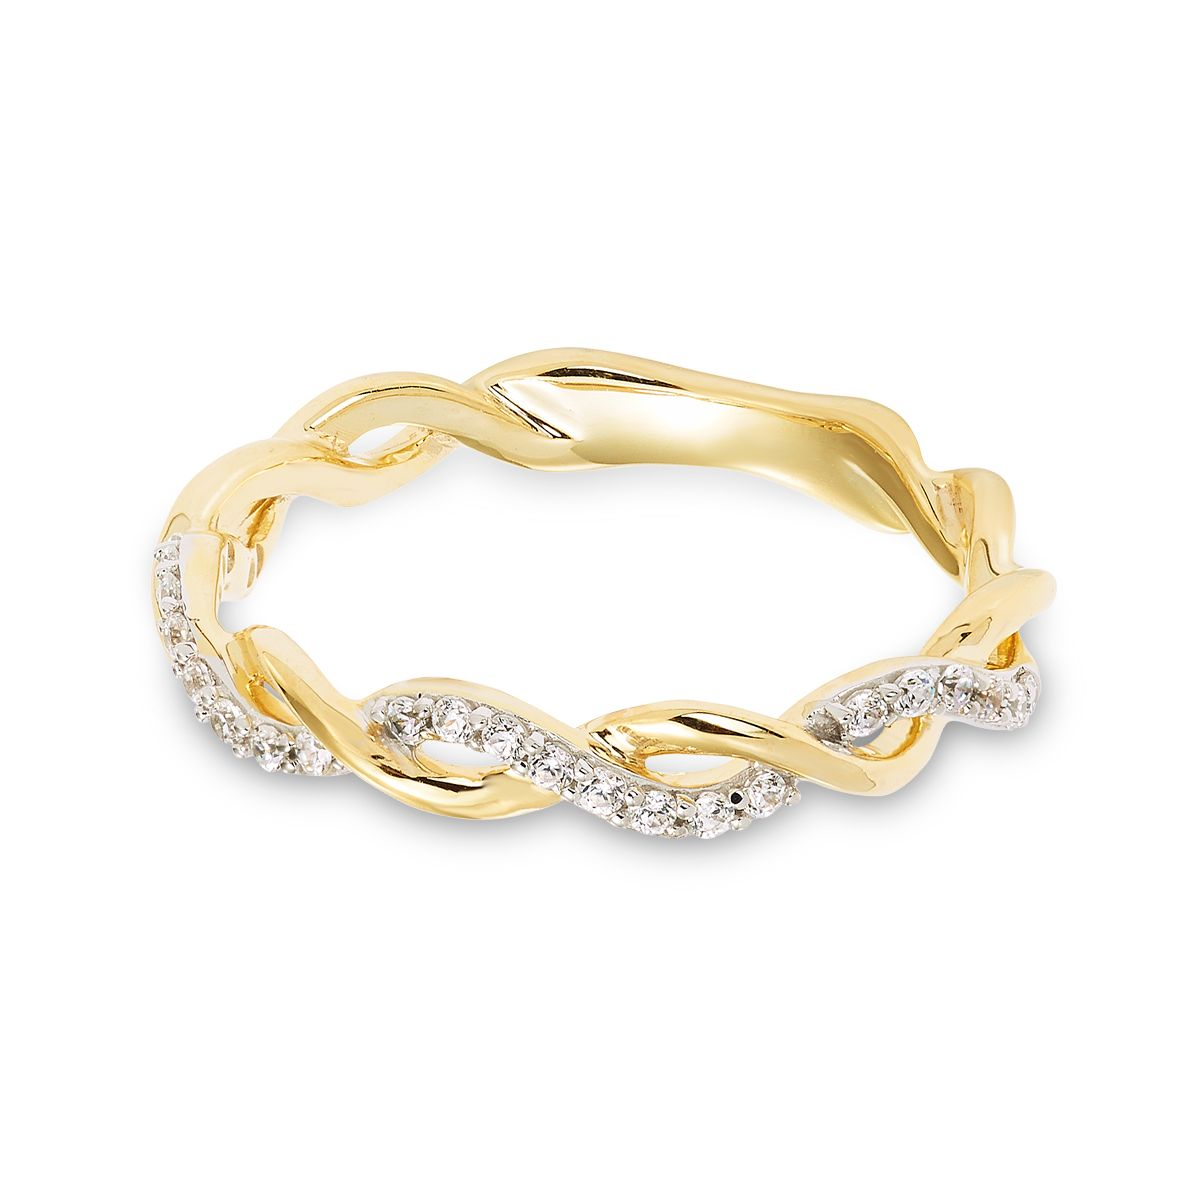 10K Yellow Gold Twist Band